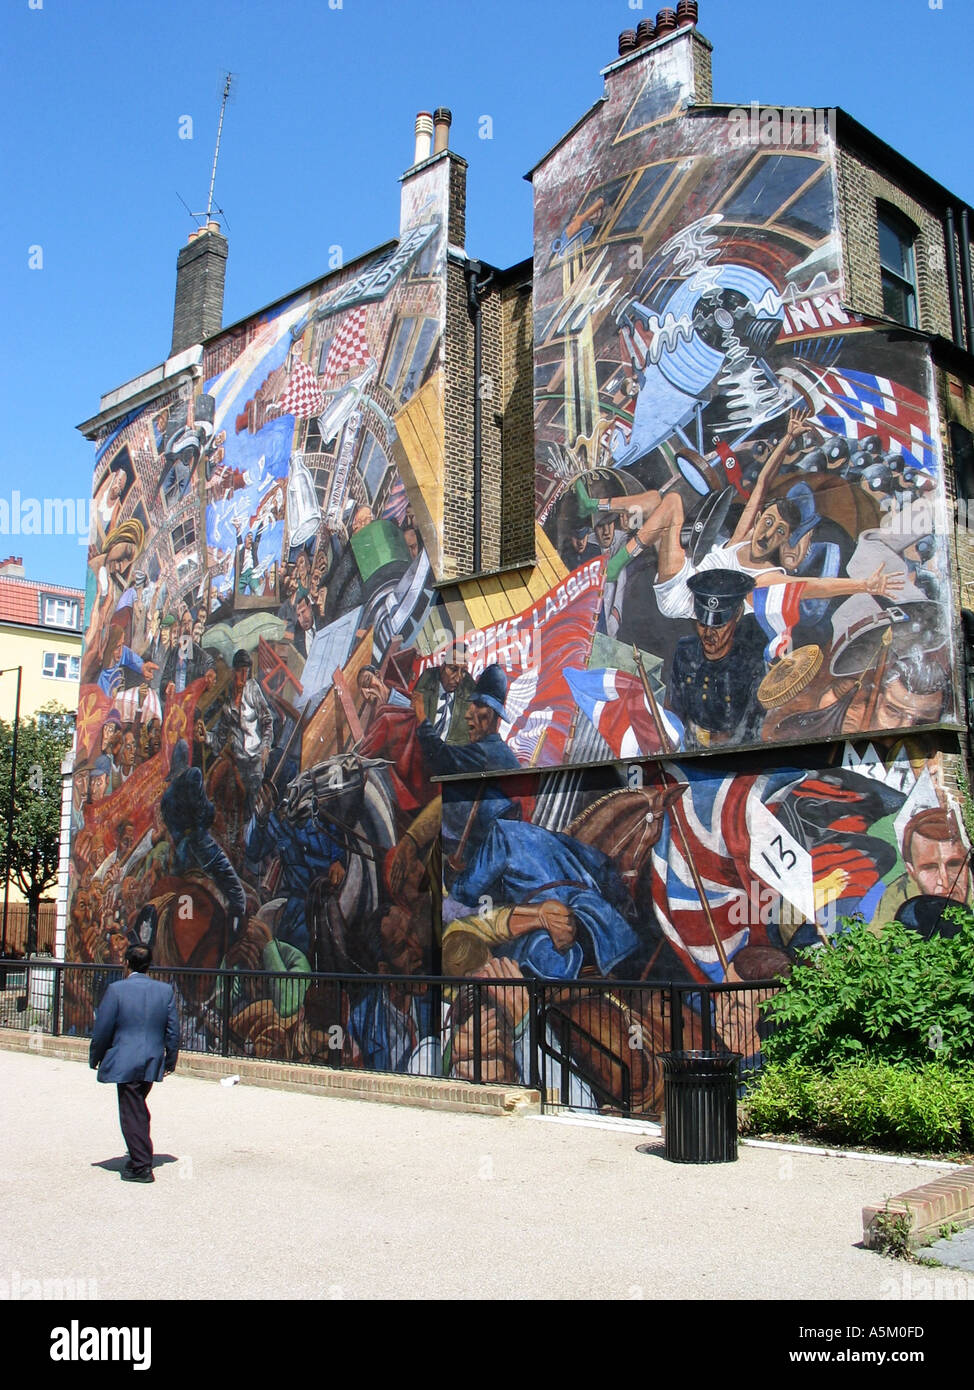 Cable Street Mural - Stock Image